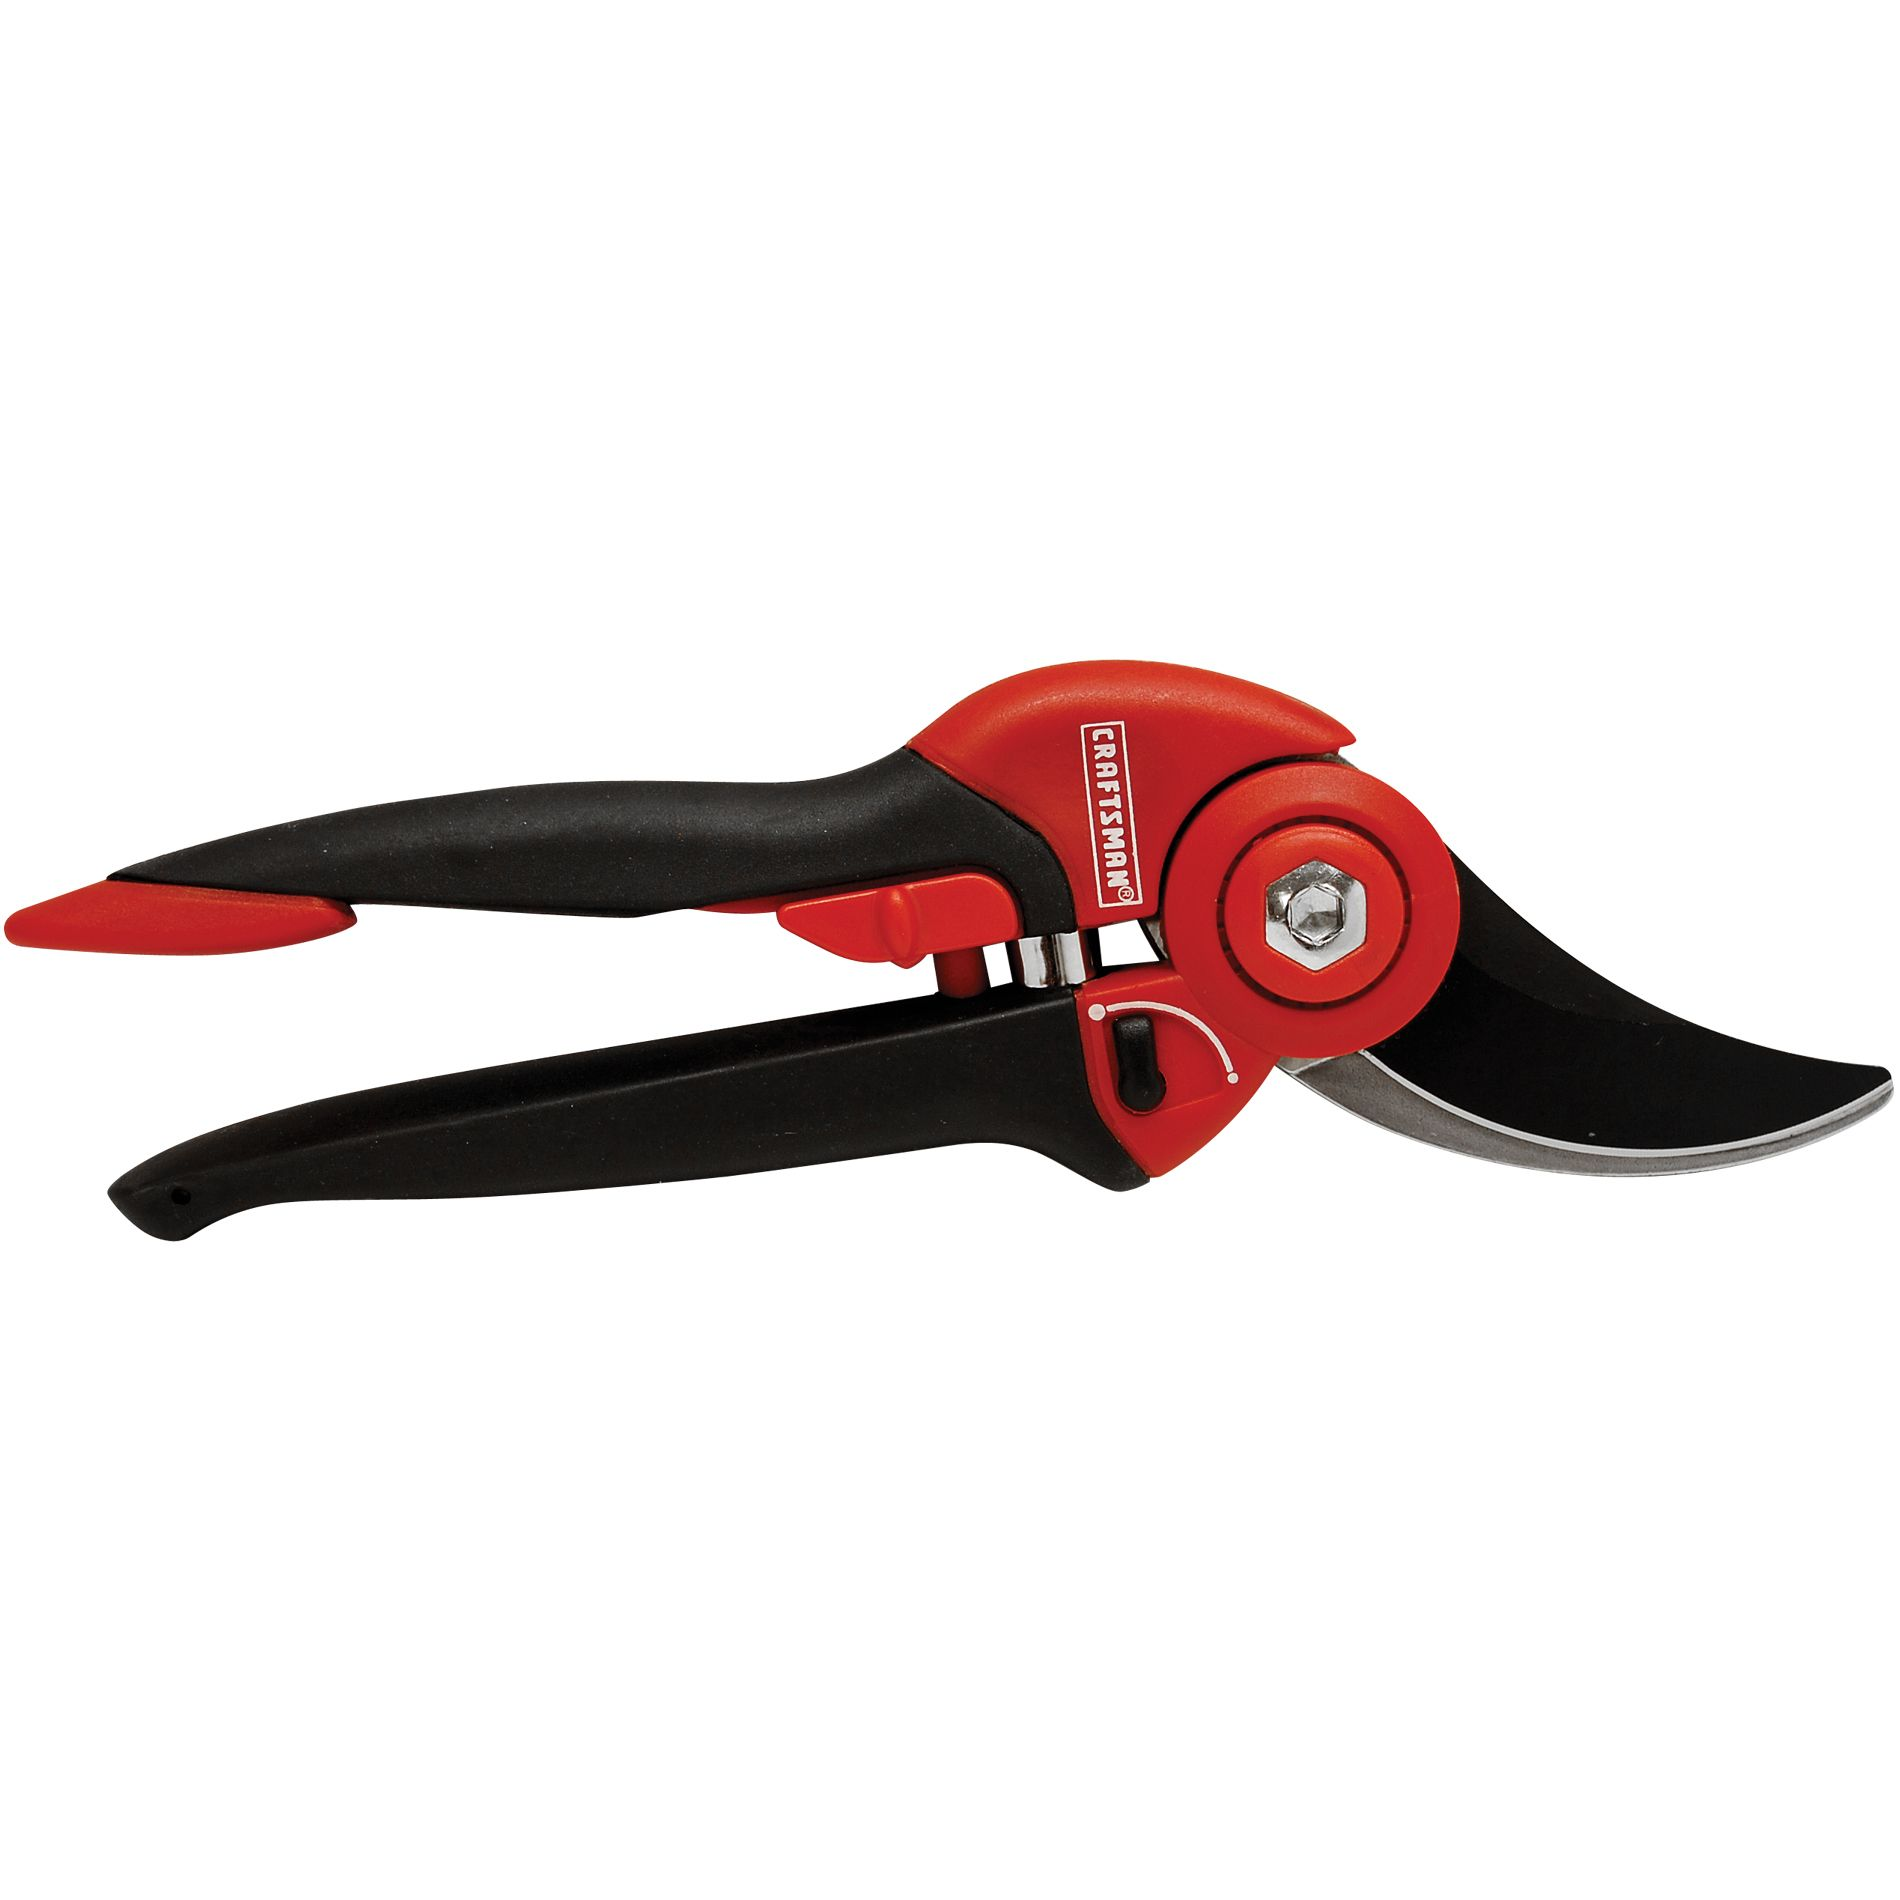 Adjustable Handle Bypass Pruner